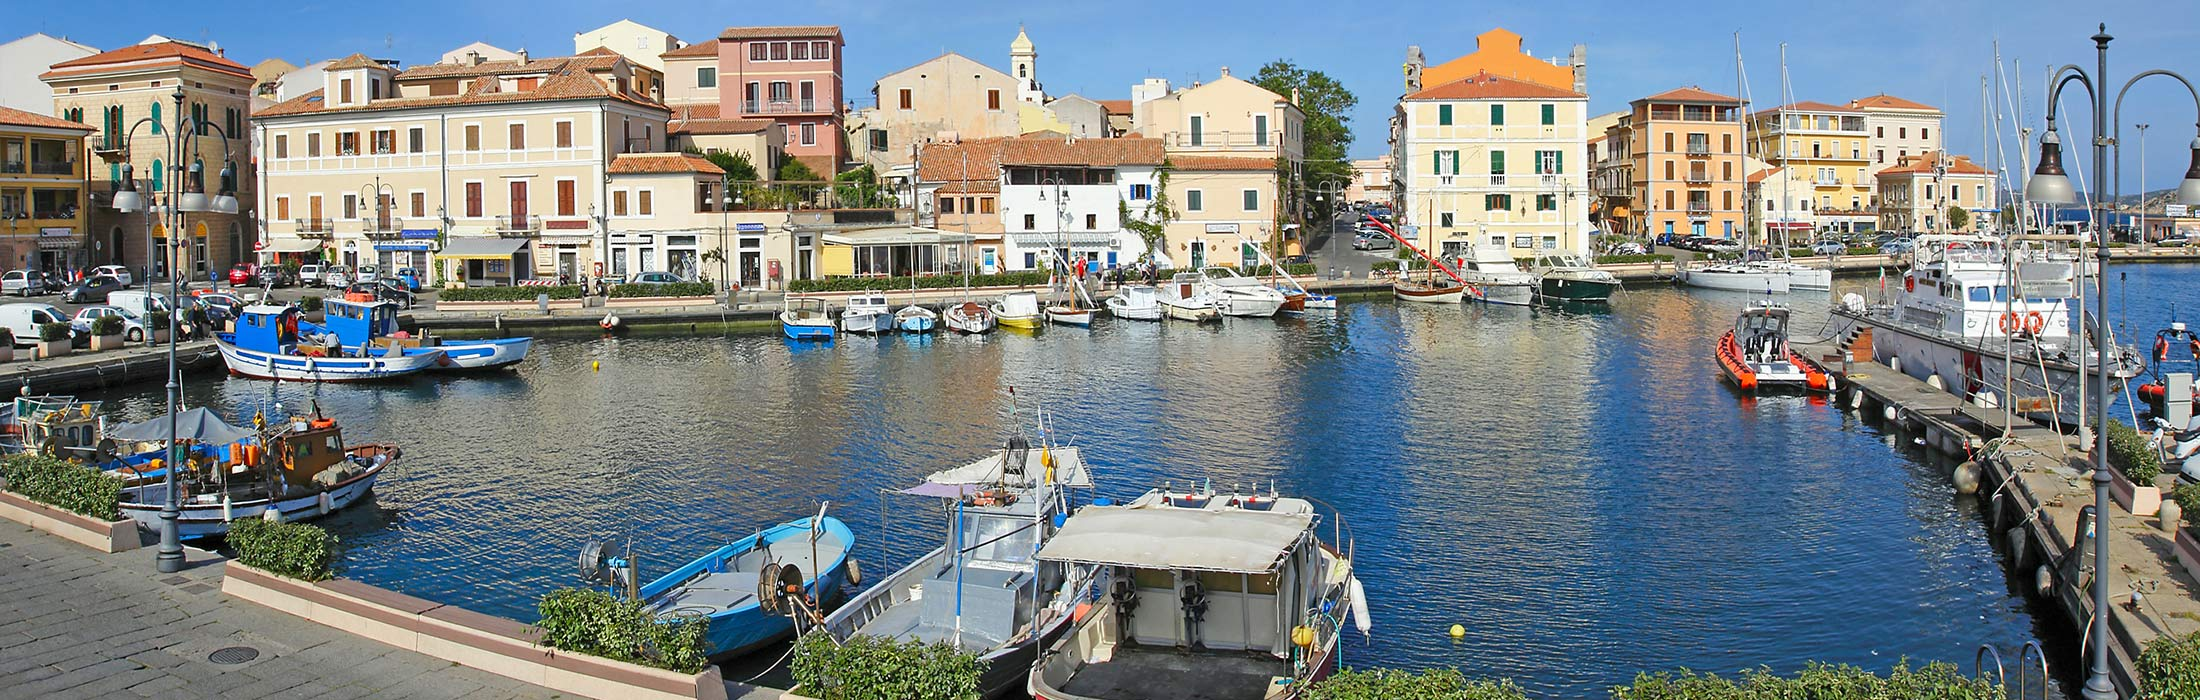 top yacht charter destinations mediterranean sardinia and corsica olbia main slider 2